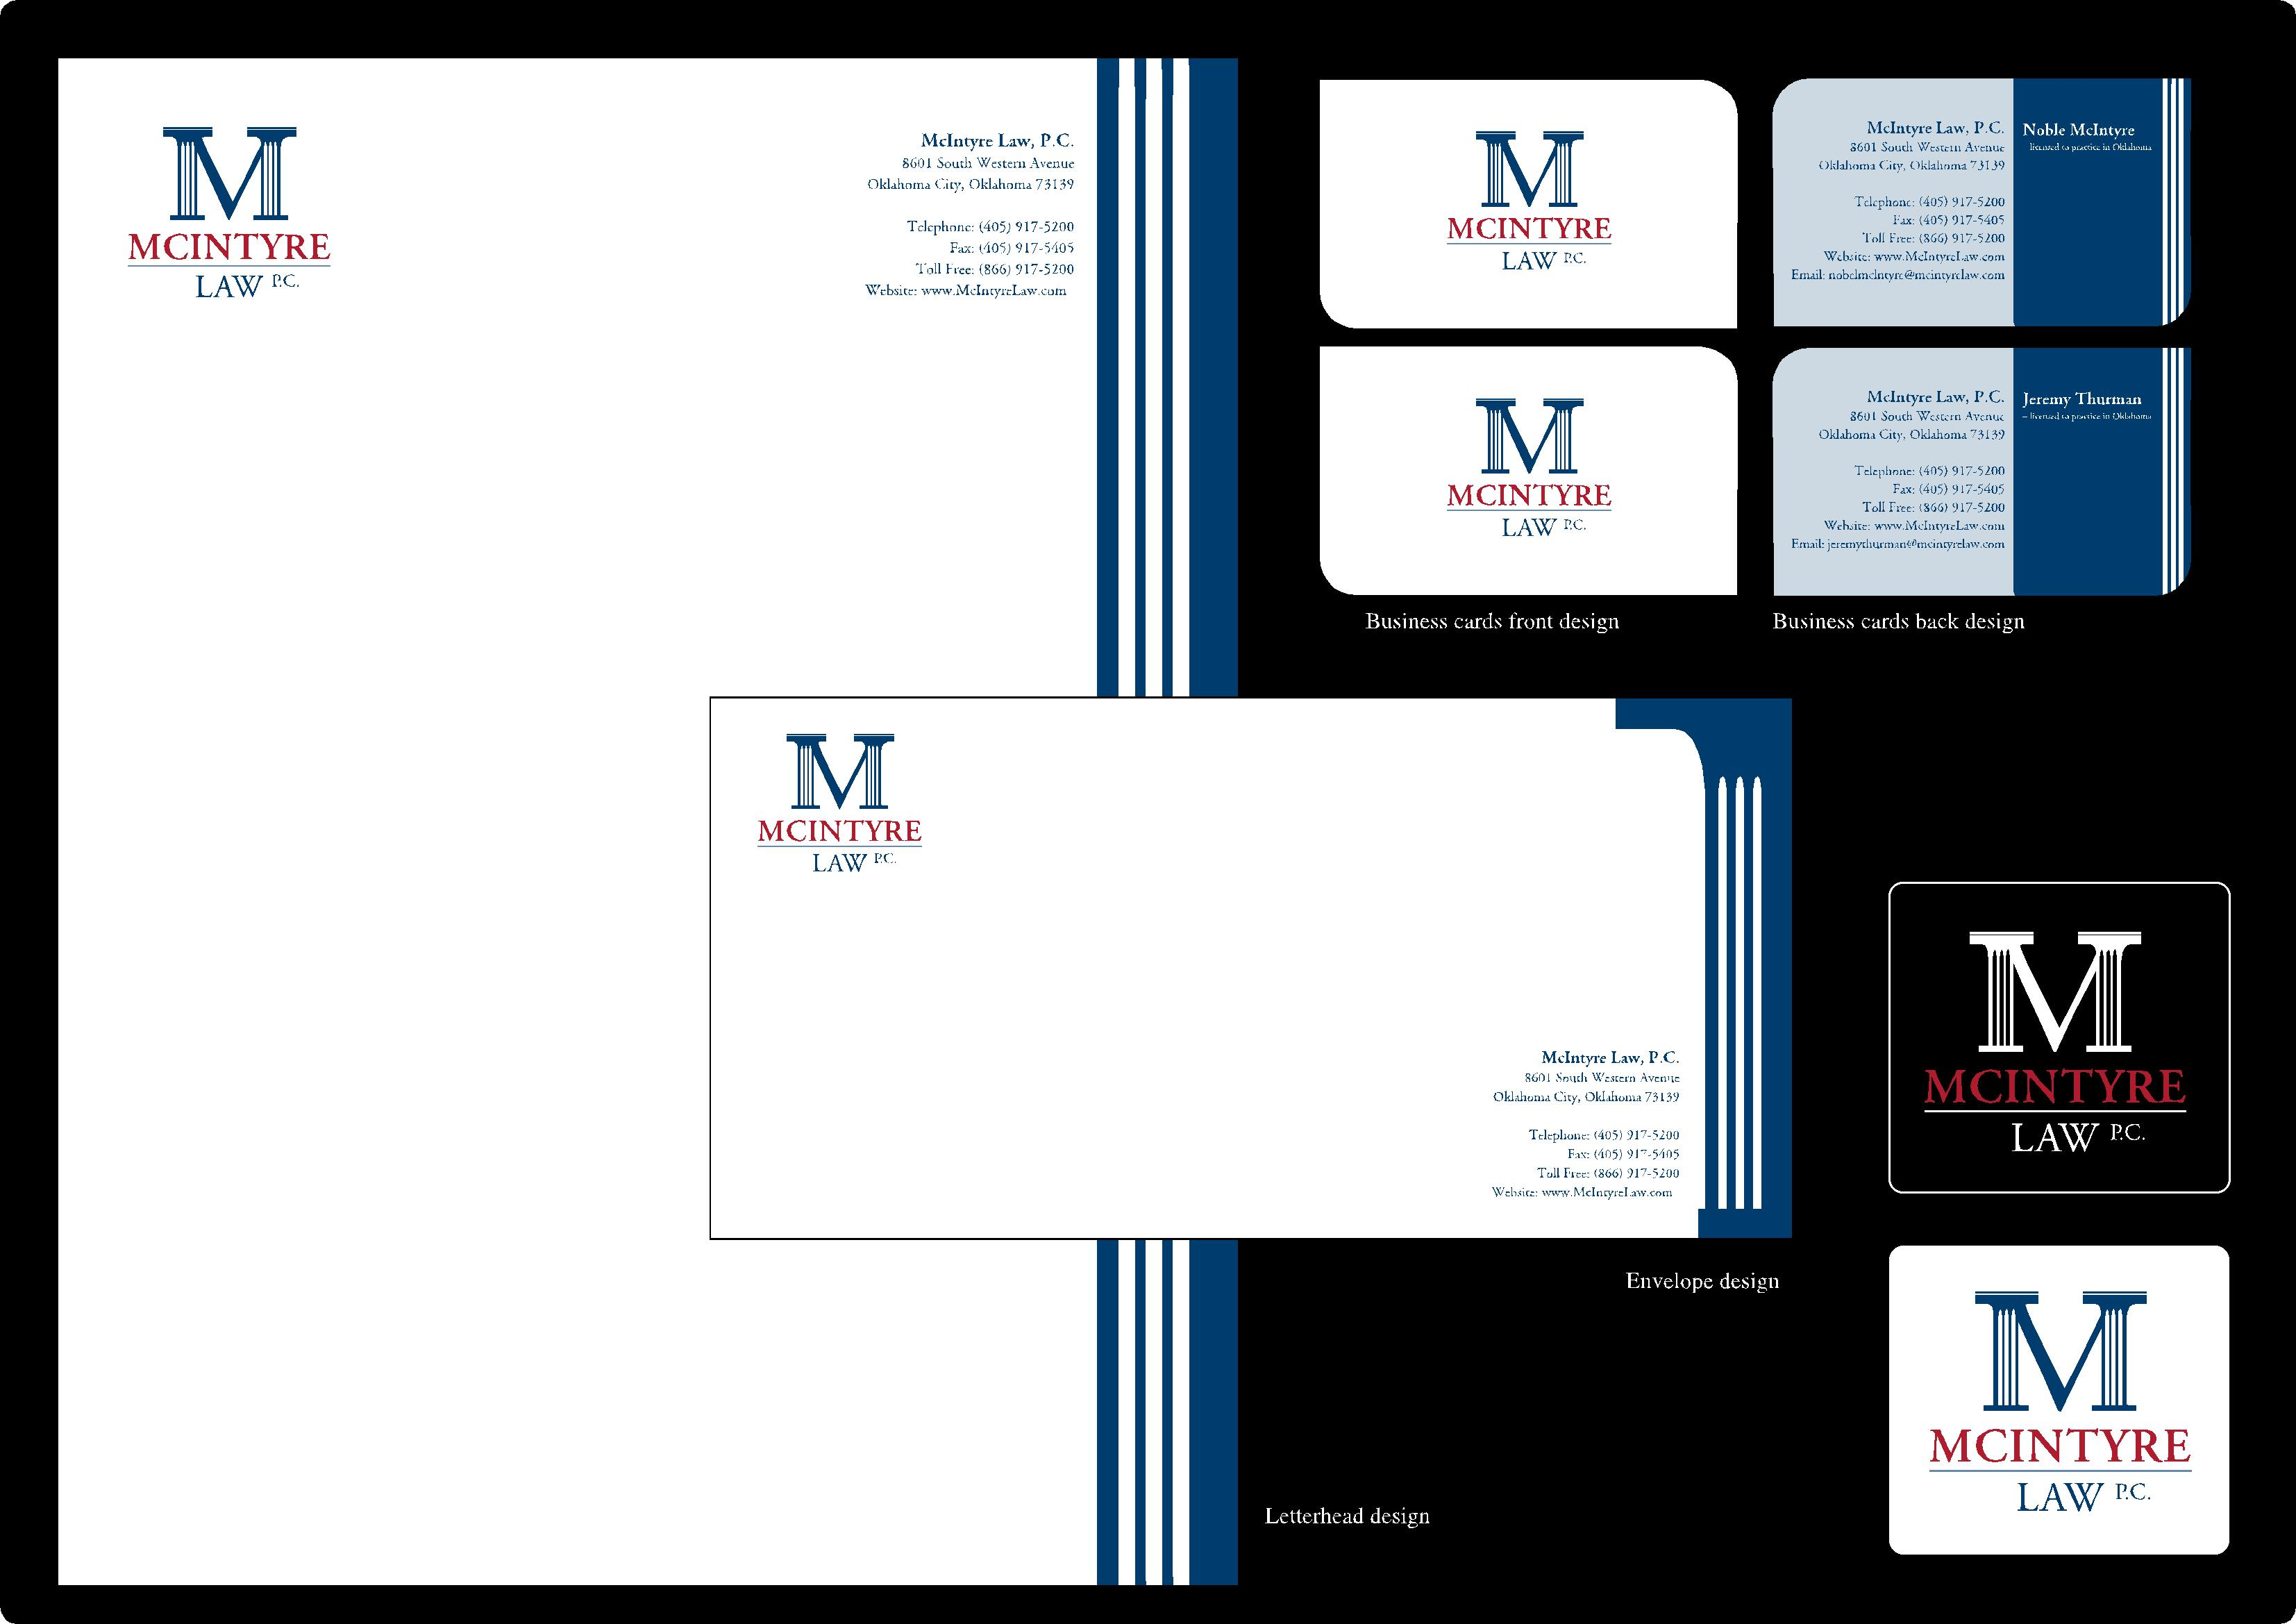 stationery design for mcintyre law p c by ng kia hui